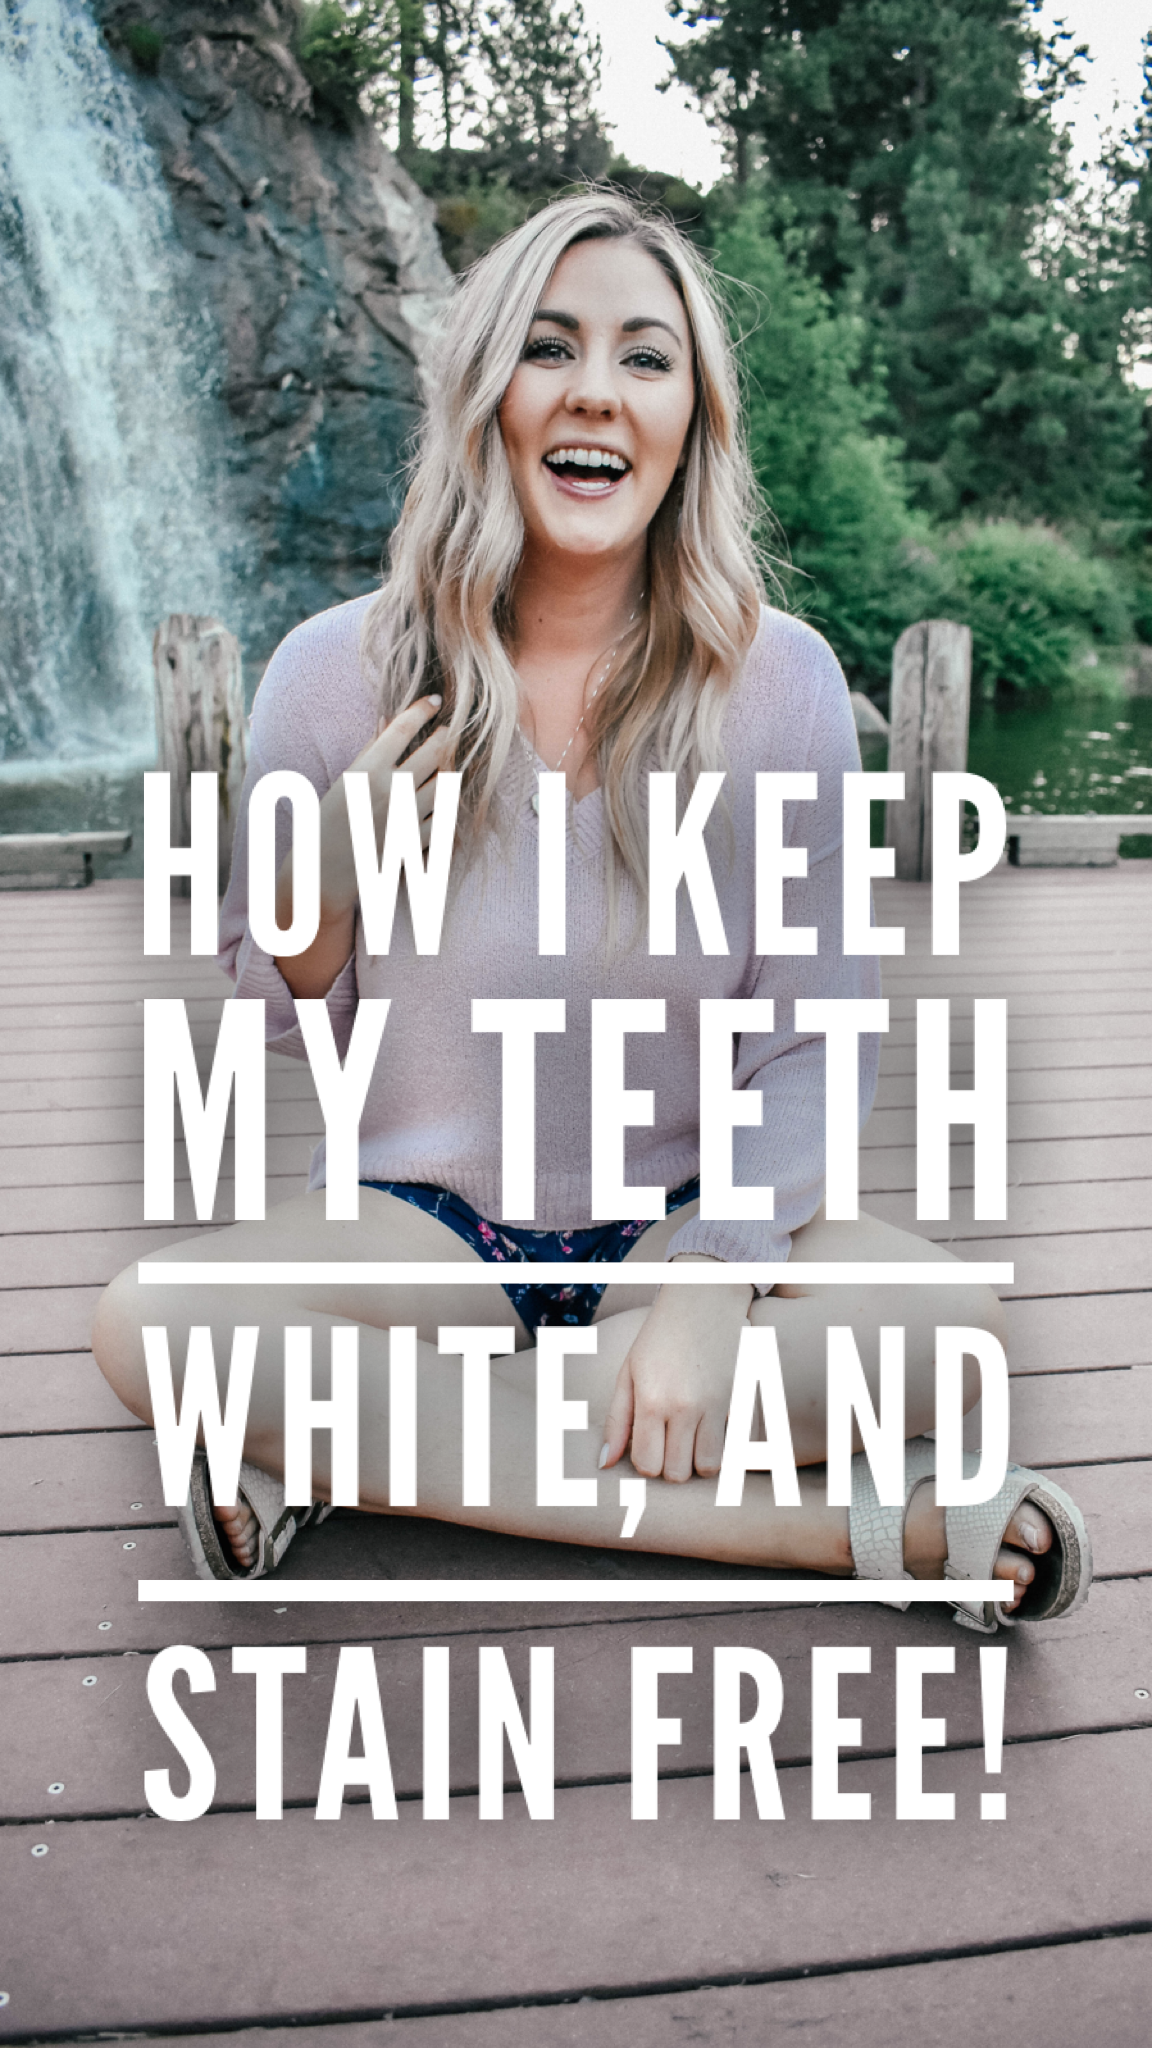 How i keep my teeth white how i keep my teeth white and stain free fandeluxe Image collections